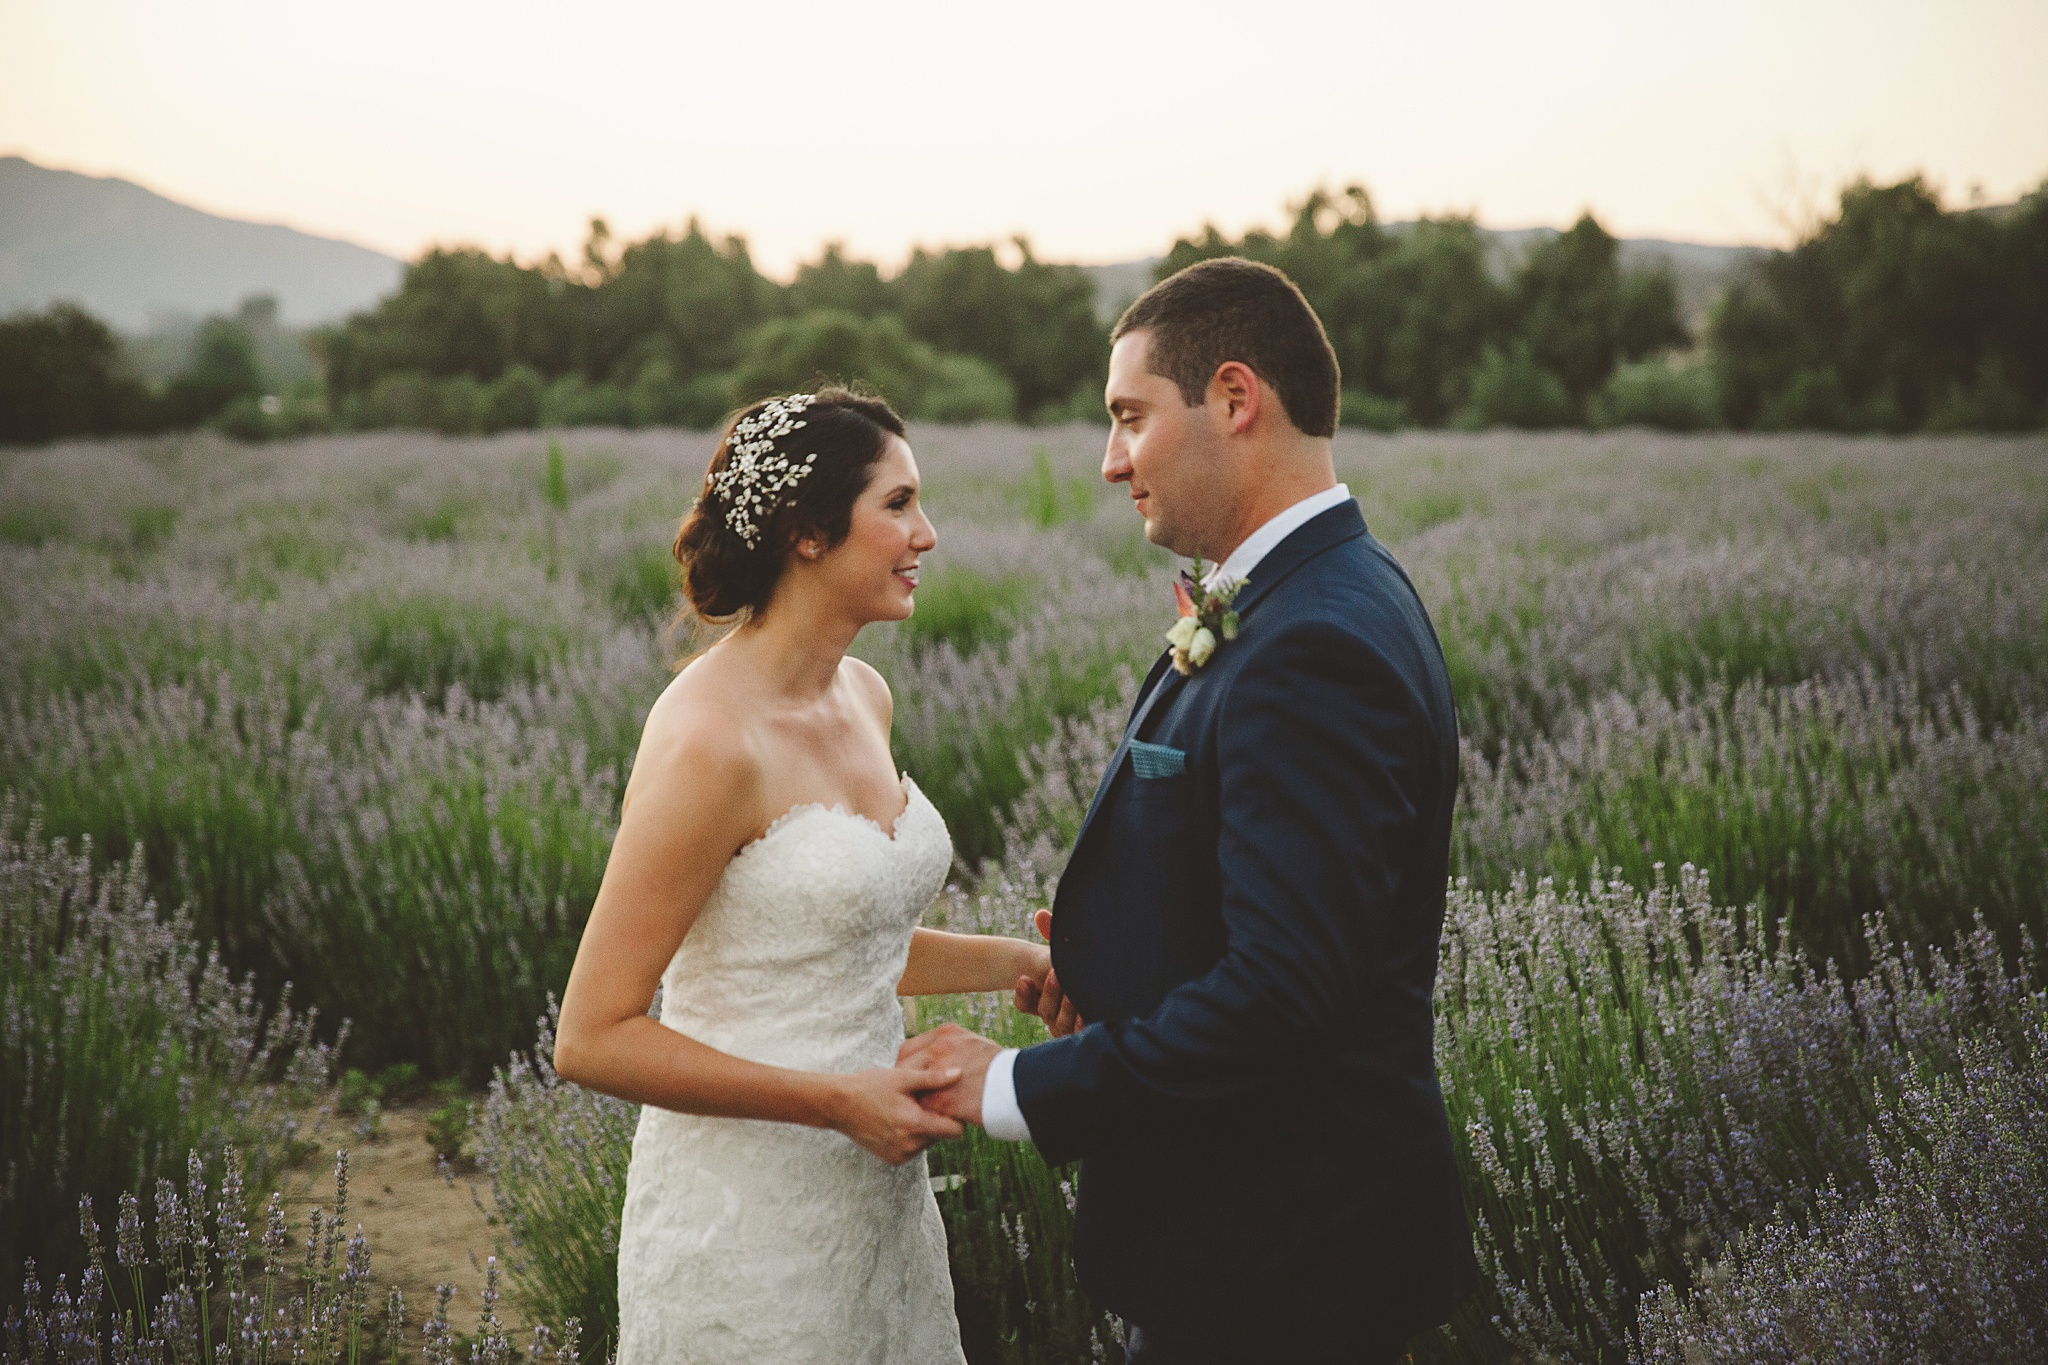 Highland springs wedding portraits in lavender field.